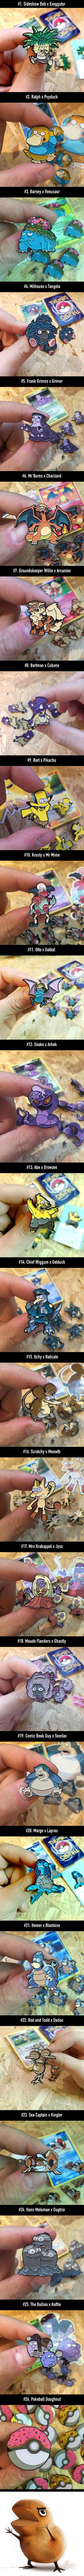 This Artist's Simpsons/Pokemon Mashup Pins Are Frickin Great. This is masterful! The only thing I would have done differently is made Wiggum a Pokemon with a pig-nose, like Mankey.